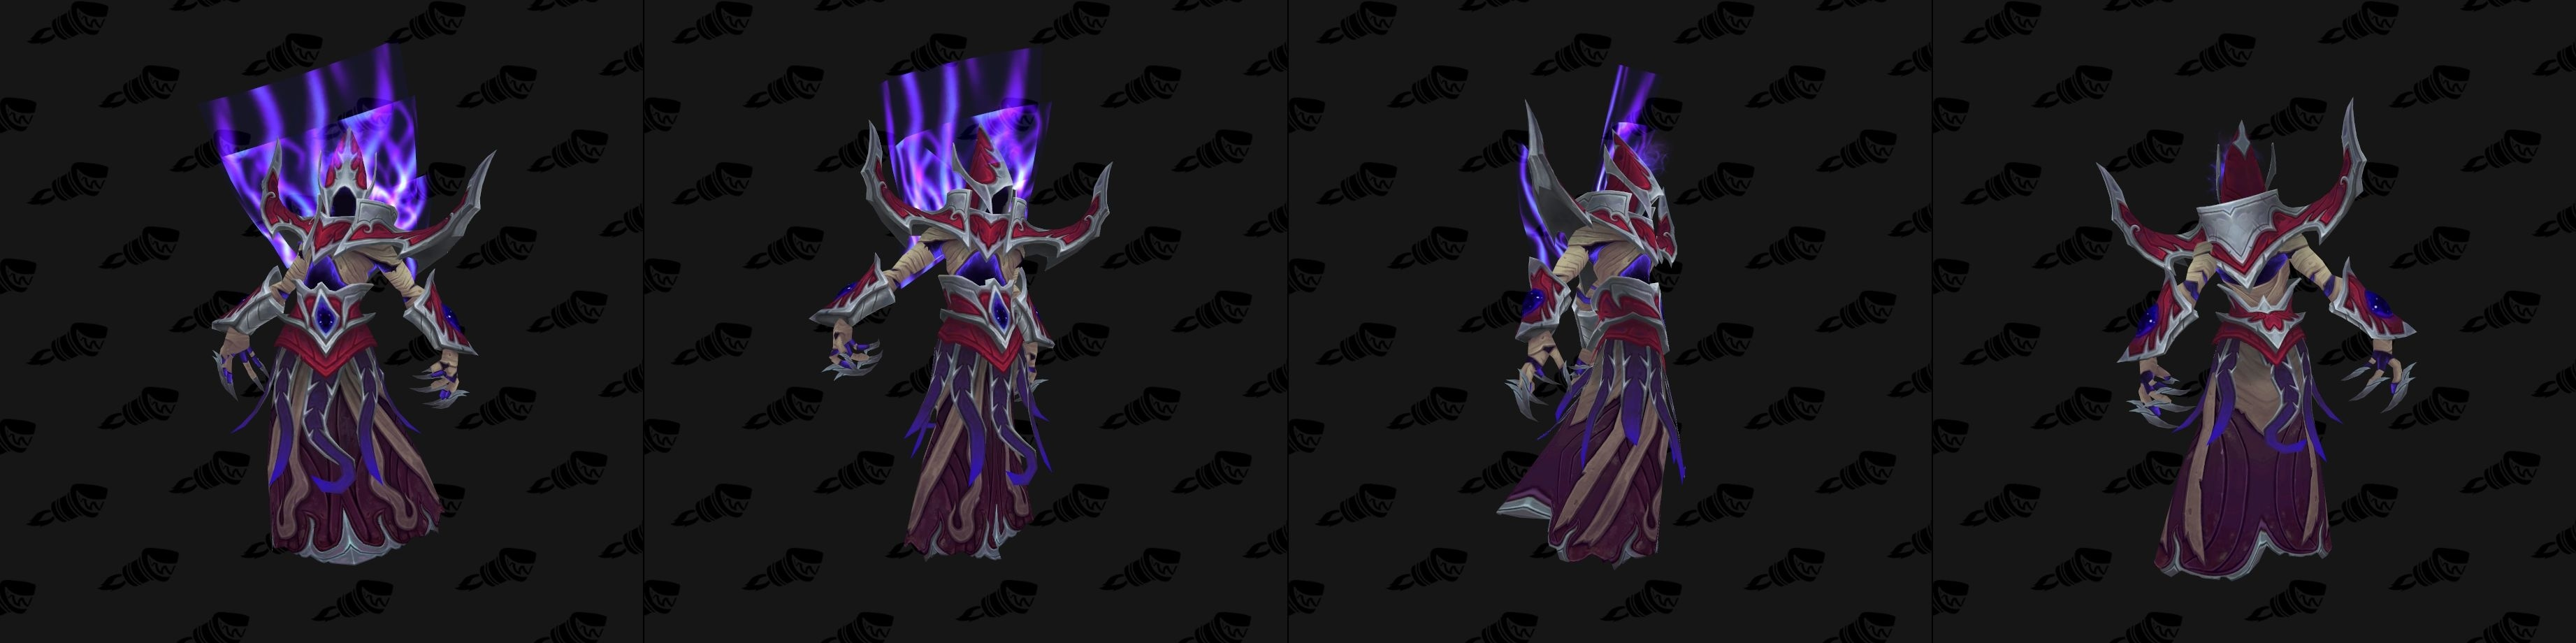 New 7.3 PTR Creature and Mount Models (Spoilers) - Wowhead News